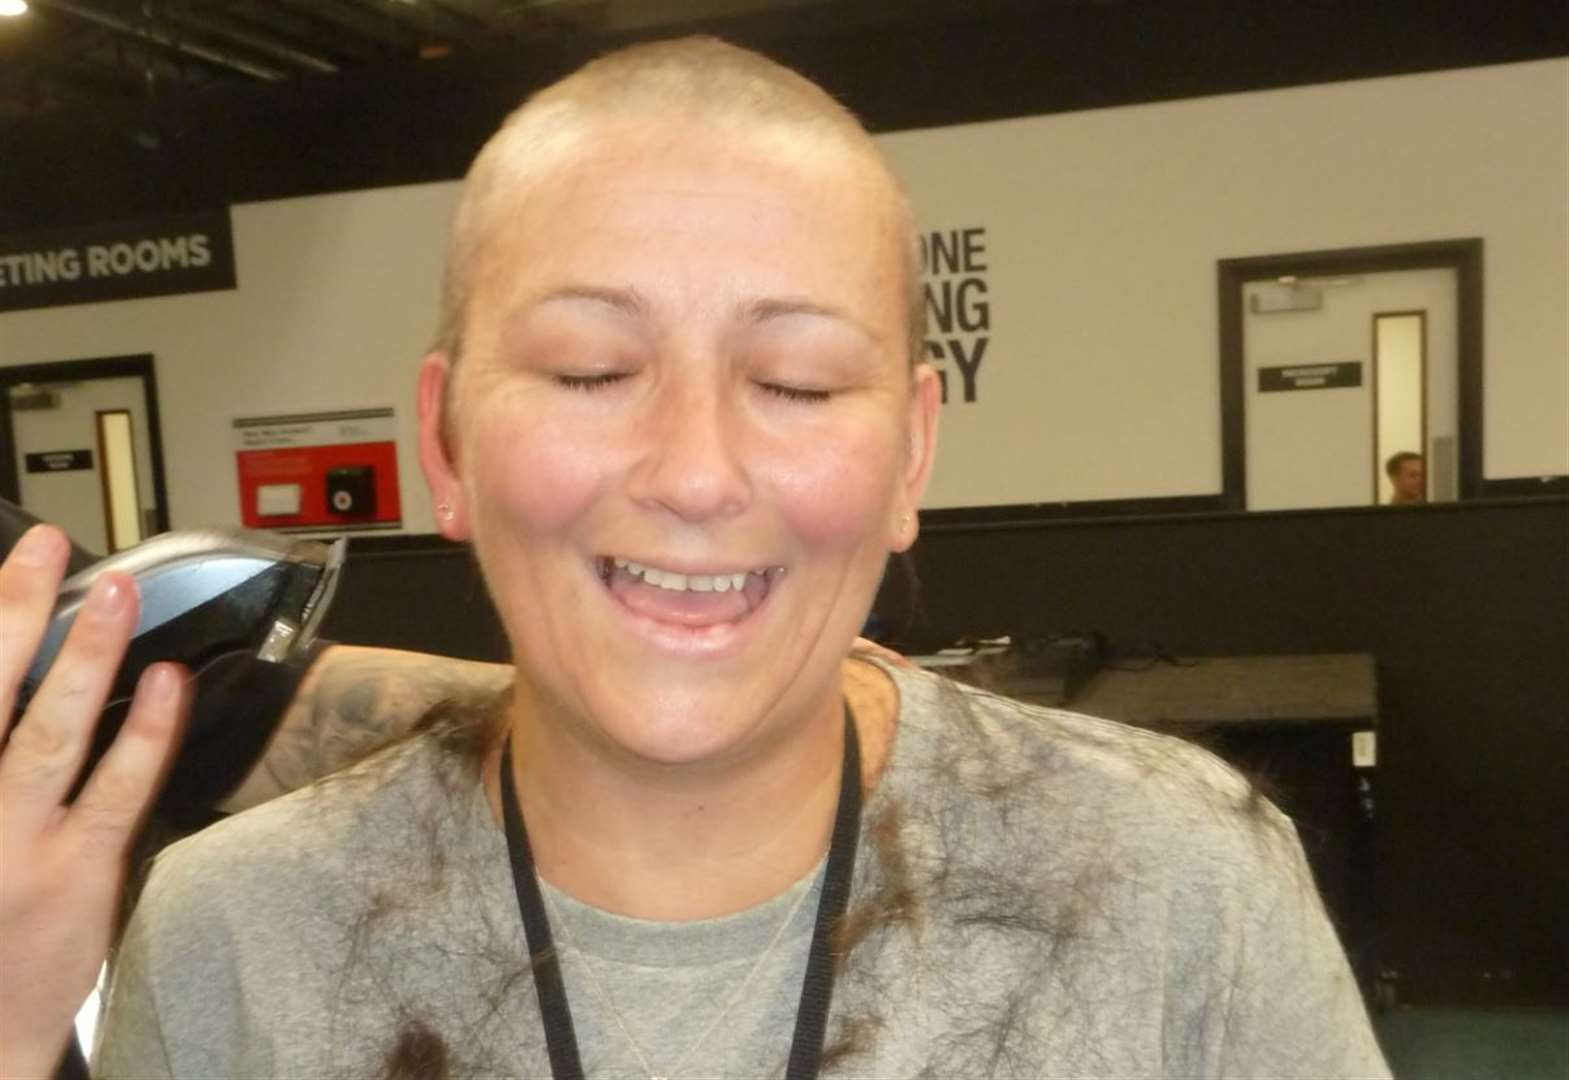 Buzzing after close shave for charity